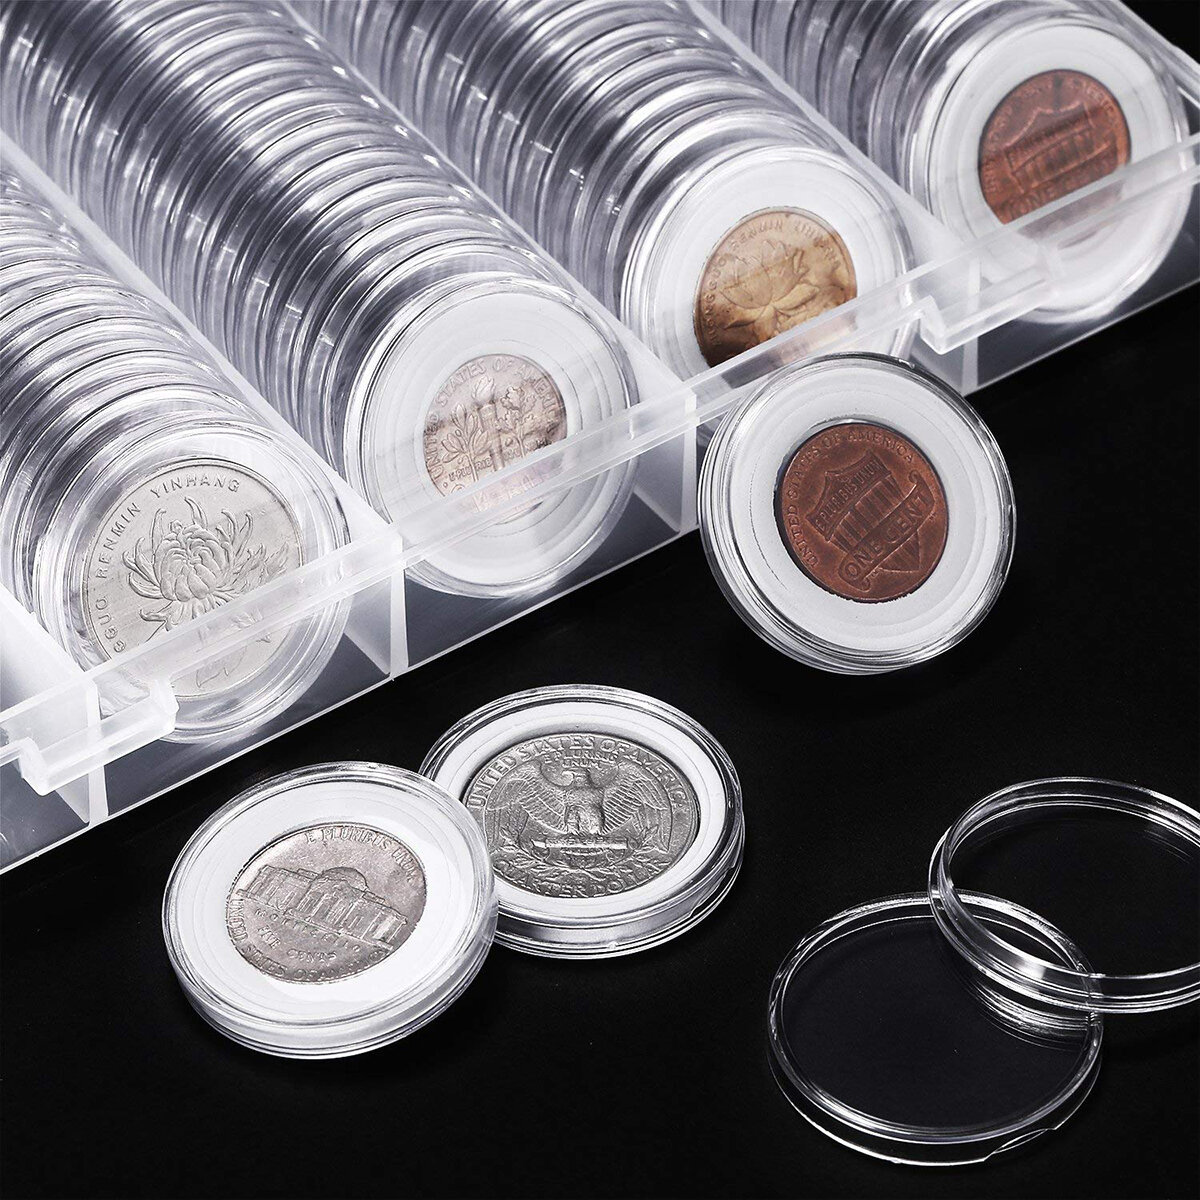 100pcs 20/25/27/30mm Applied Clear Round Cases Coin Storage Capsules Holder Coin Collection Supplies